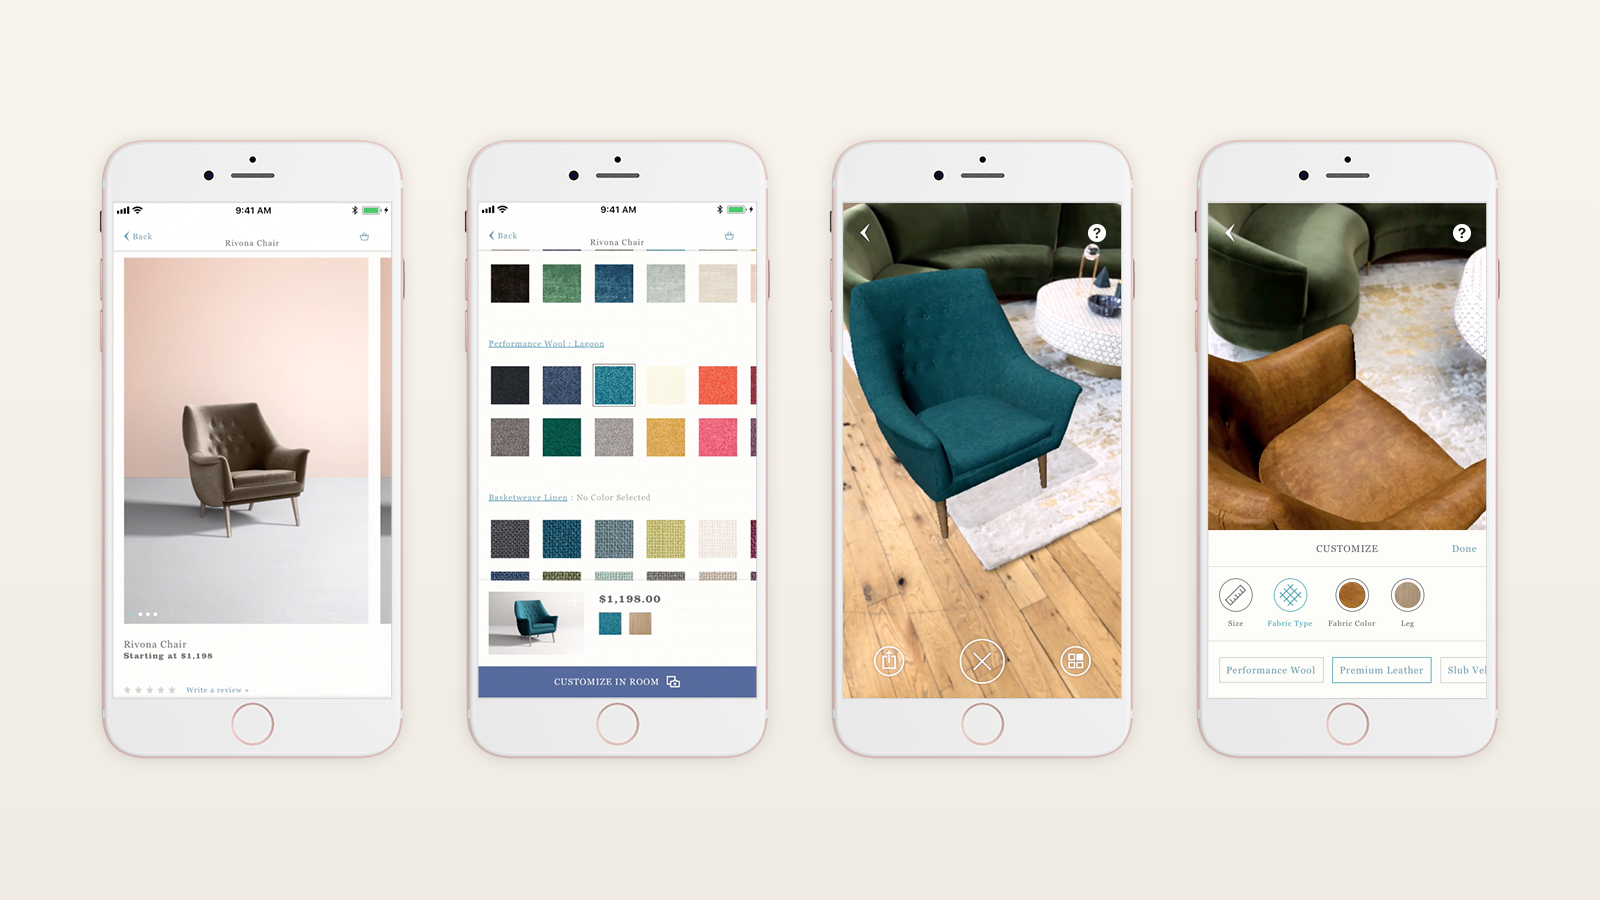 Design Your Home App: Anthropologie Hands You AR And CGI Tools To Design Your